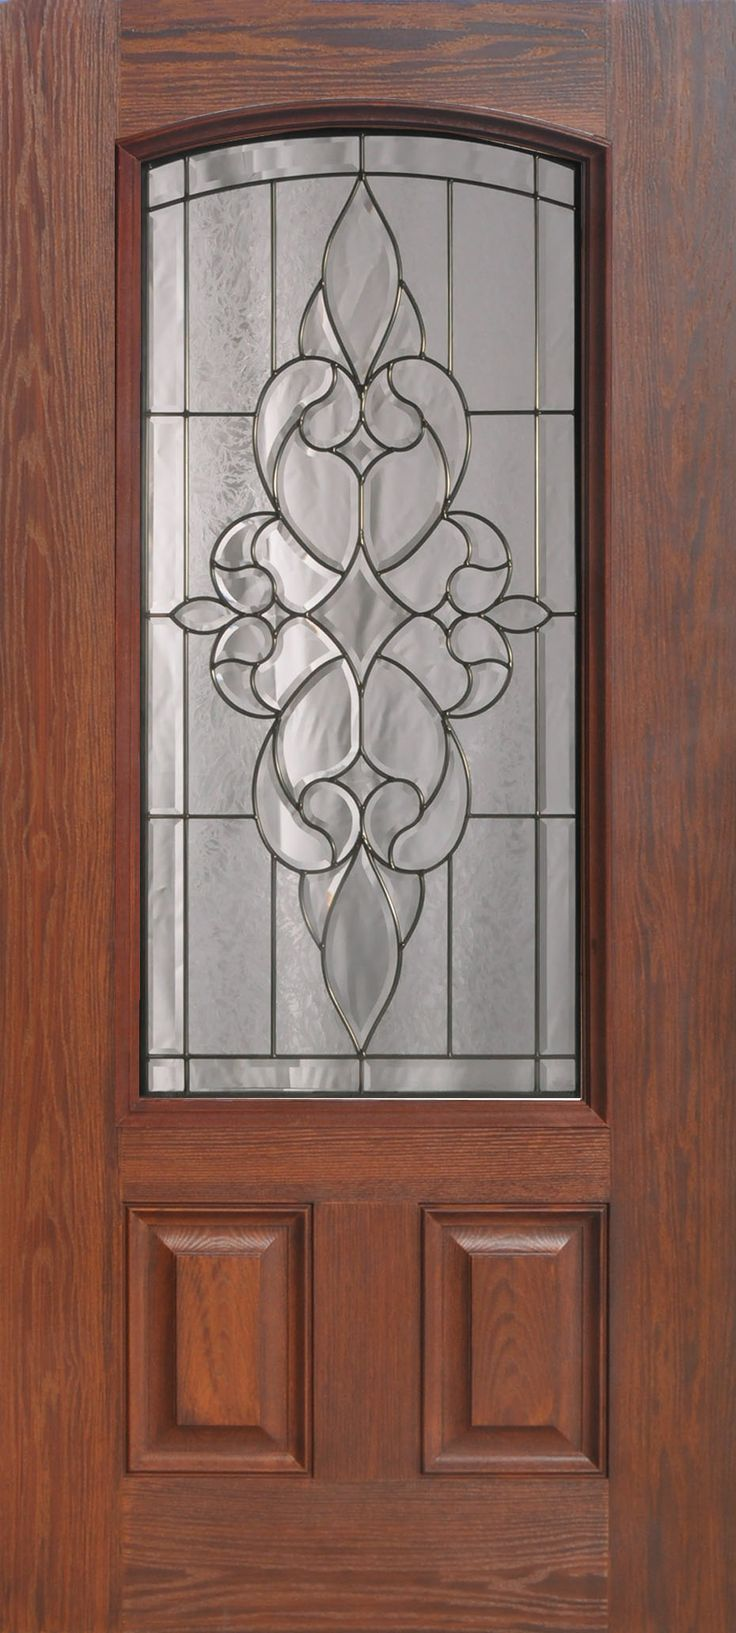 14 best courtlandt decorative glass front door images on pinterest arch lite two panel courtlandt in traditional mahogany find this pin and more on courtlandt decorative glass front door rubansaba